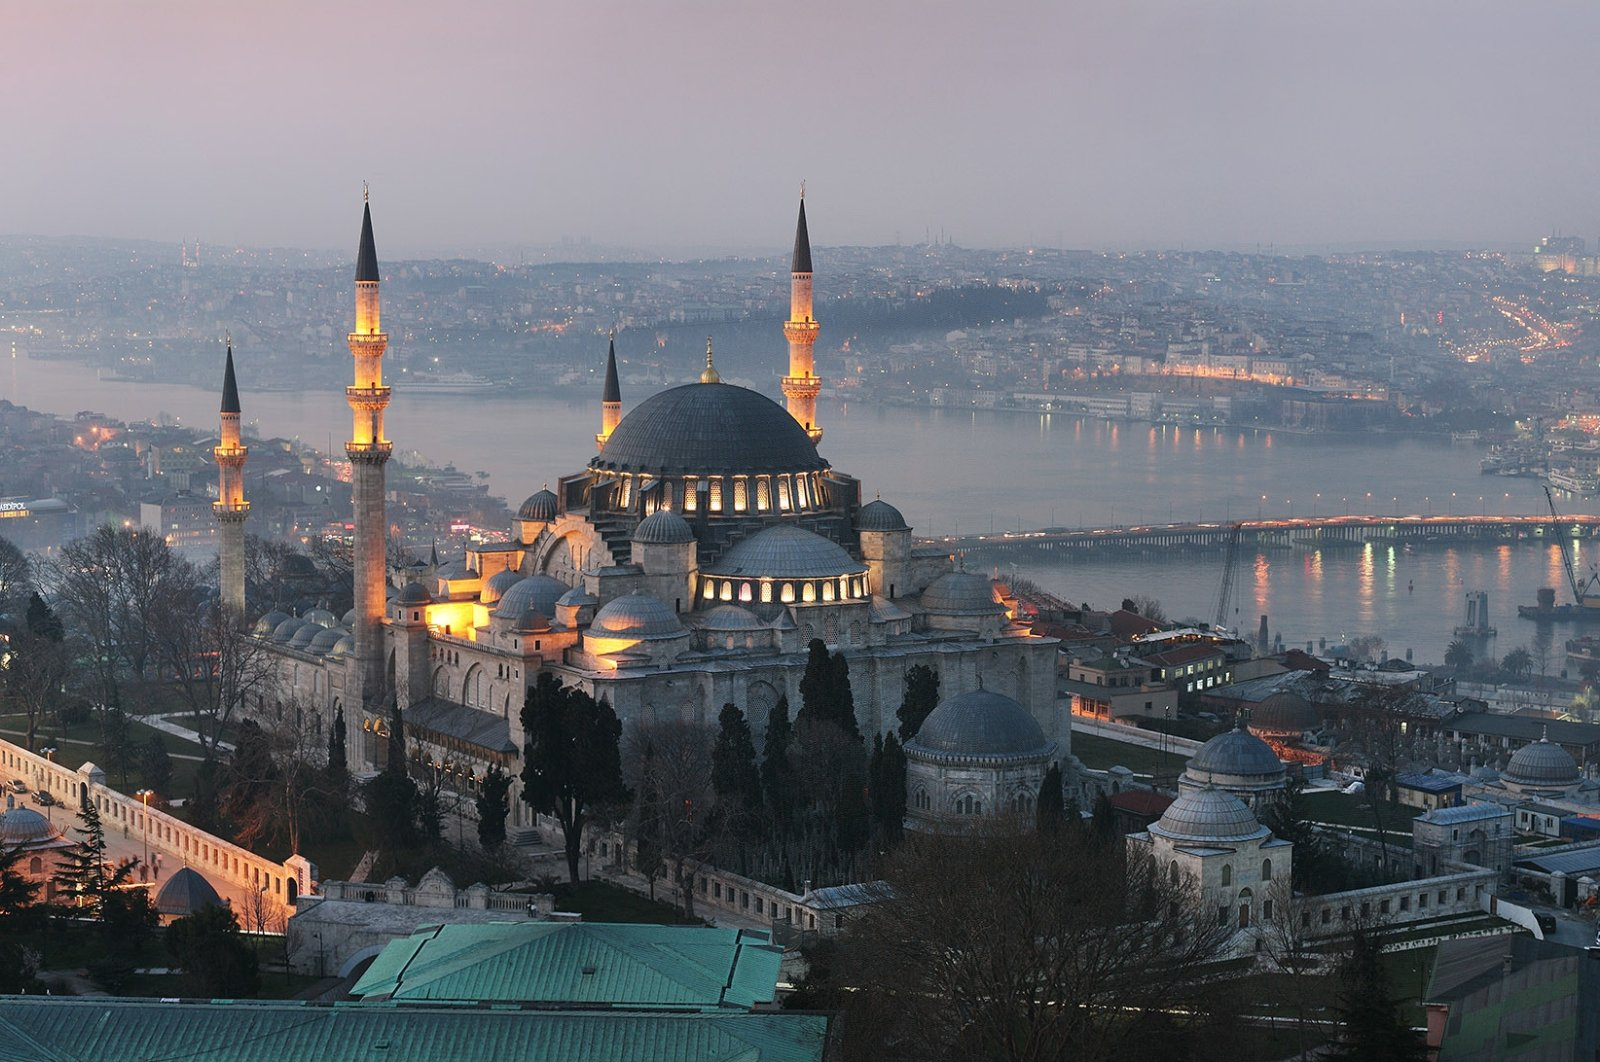 A view of Istanbul at night, the Golden Horn in the distance. (Shutterstock Photo)